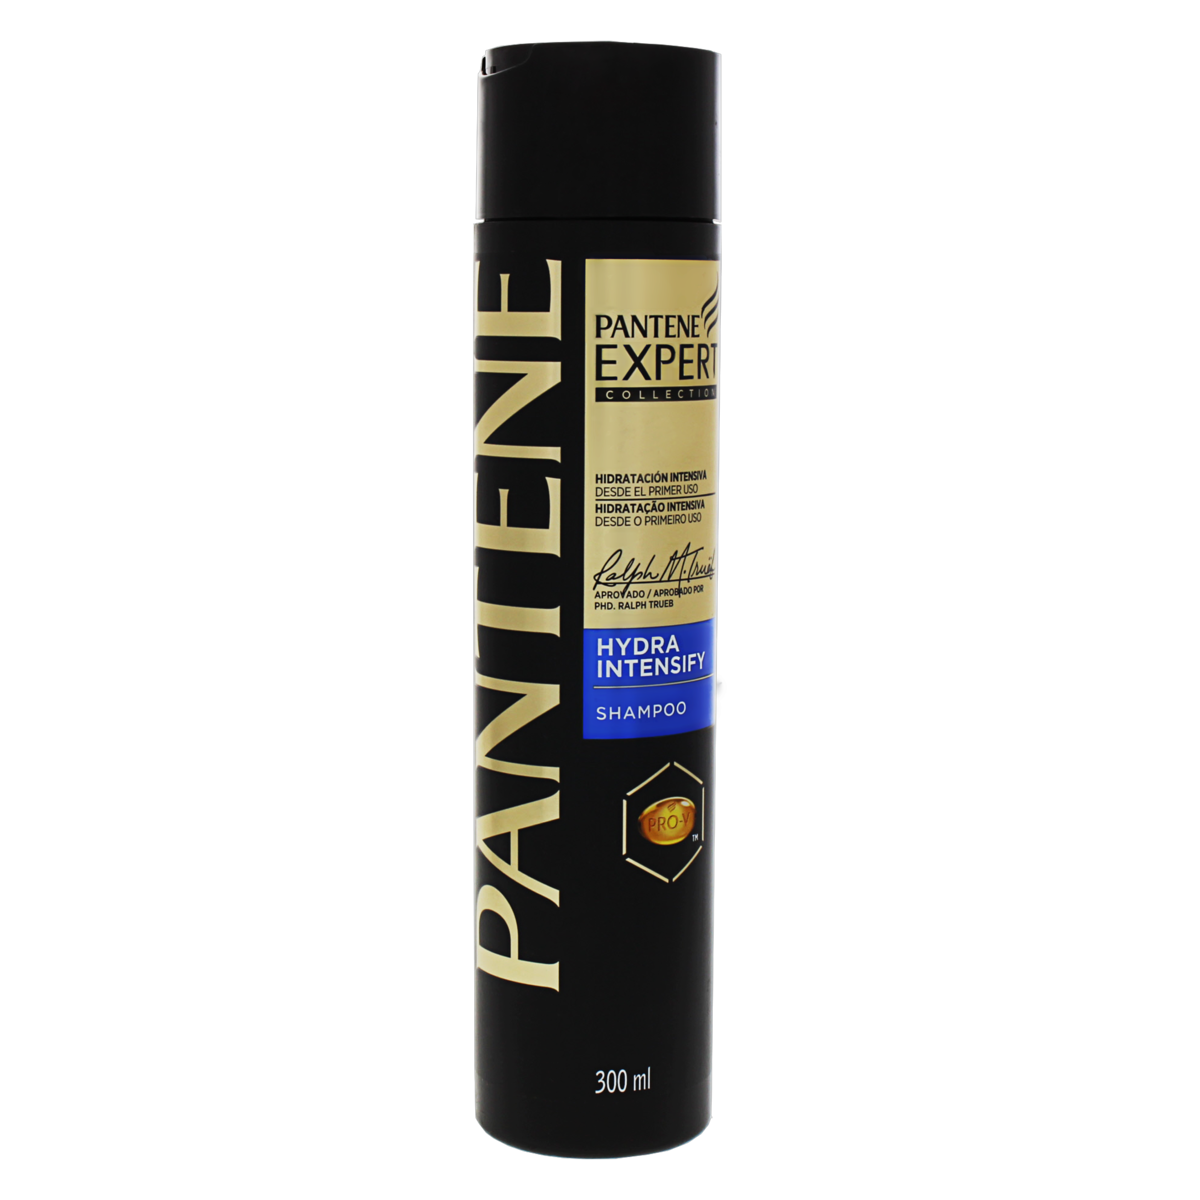 7506339342079 - SHAMPOO HIDRA INTENSIFY PANTENE EXPERT COLLECTION FRASCO 300ML